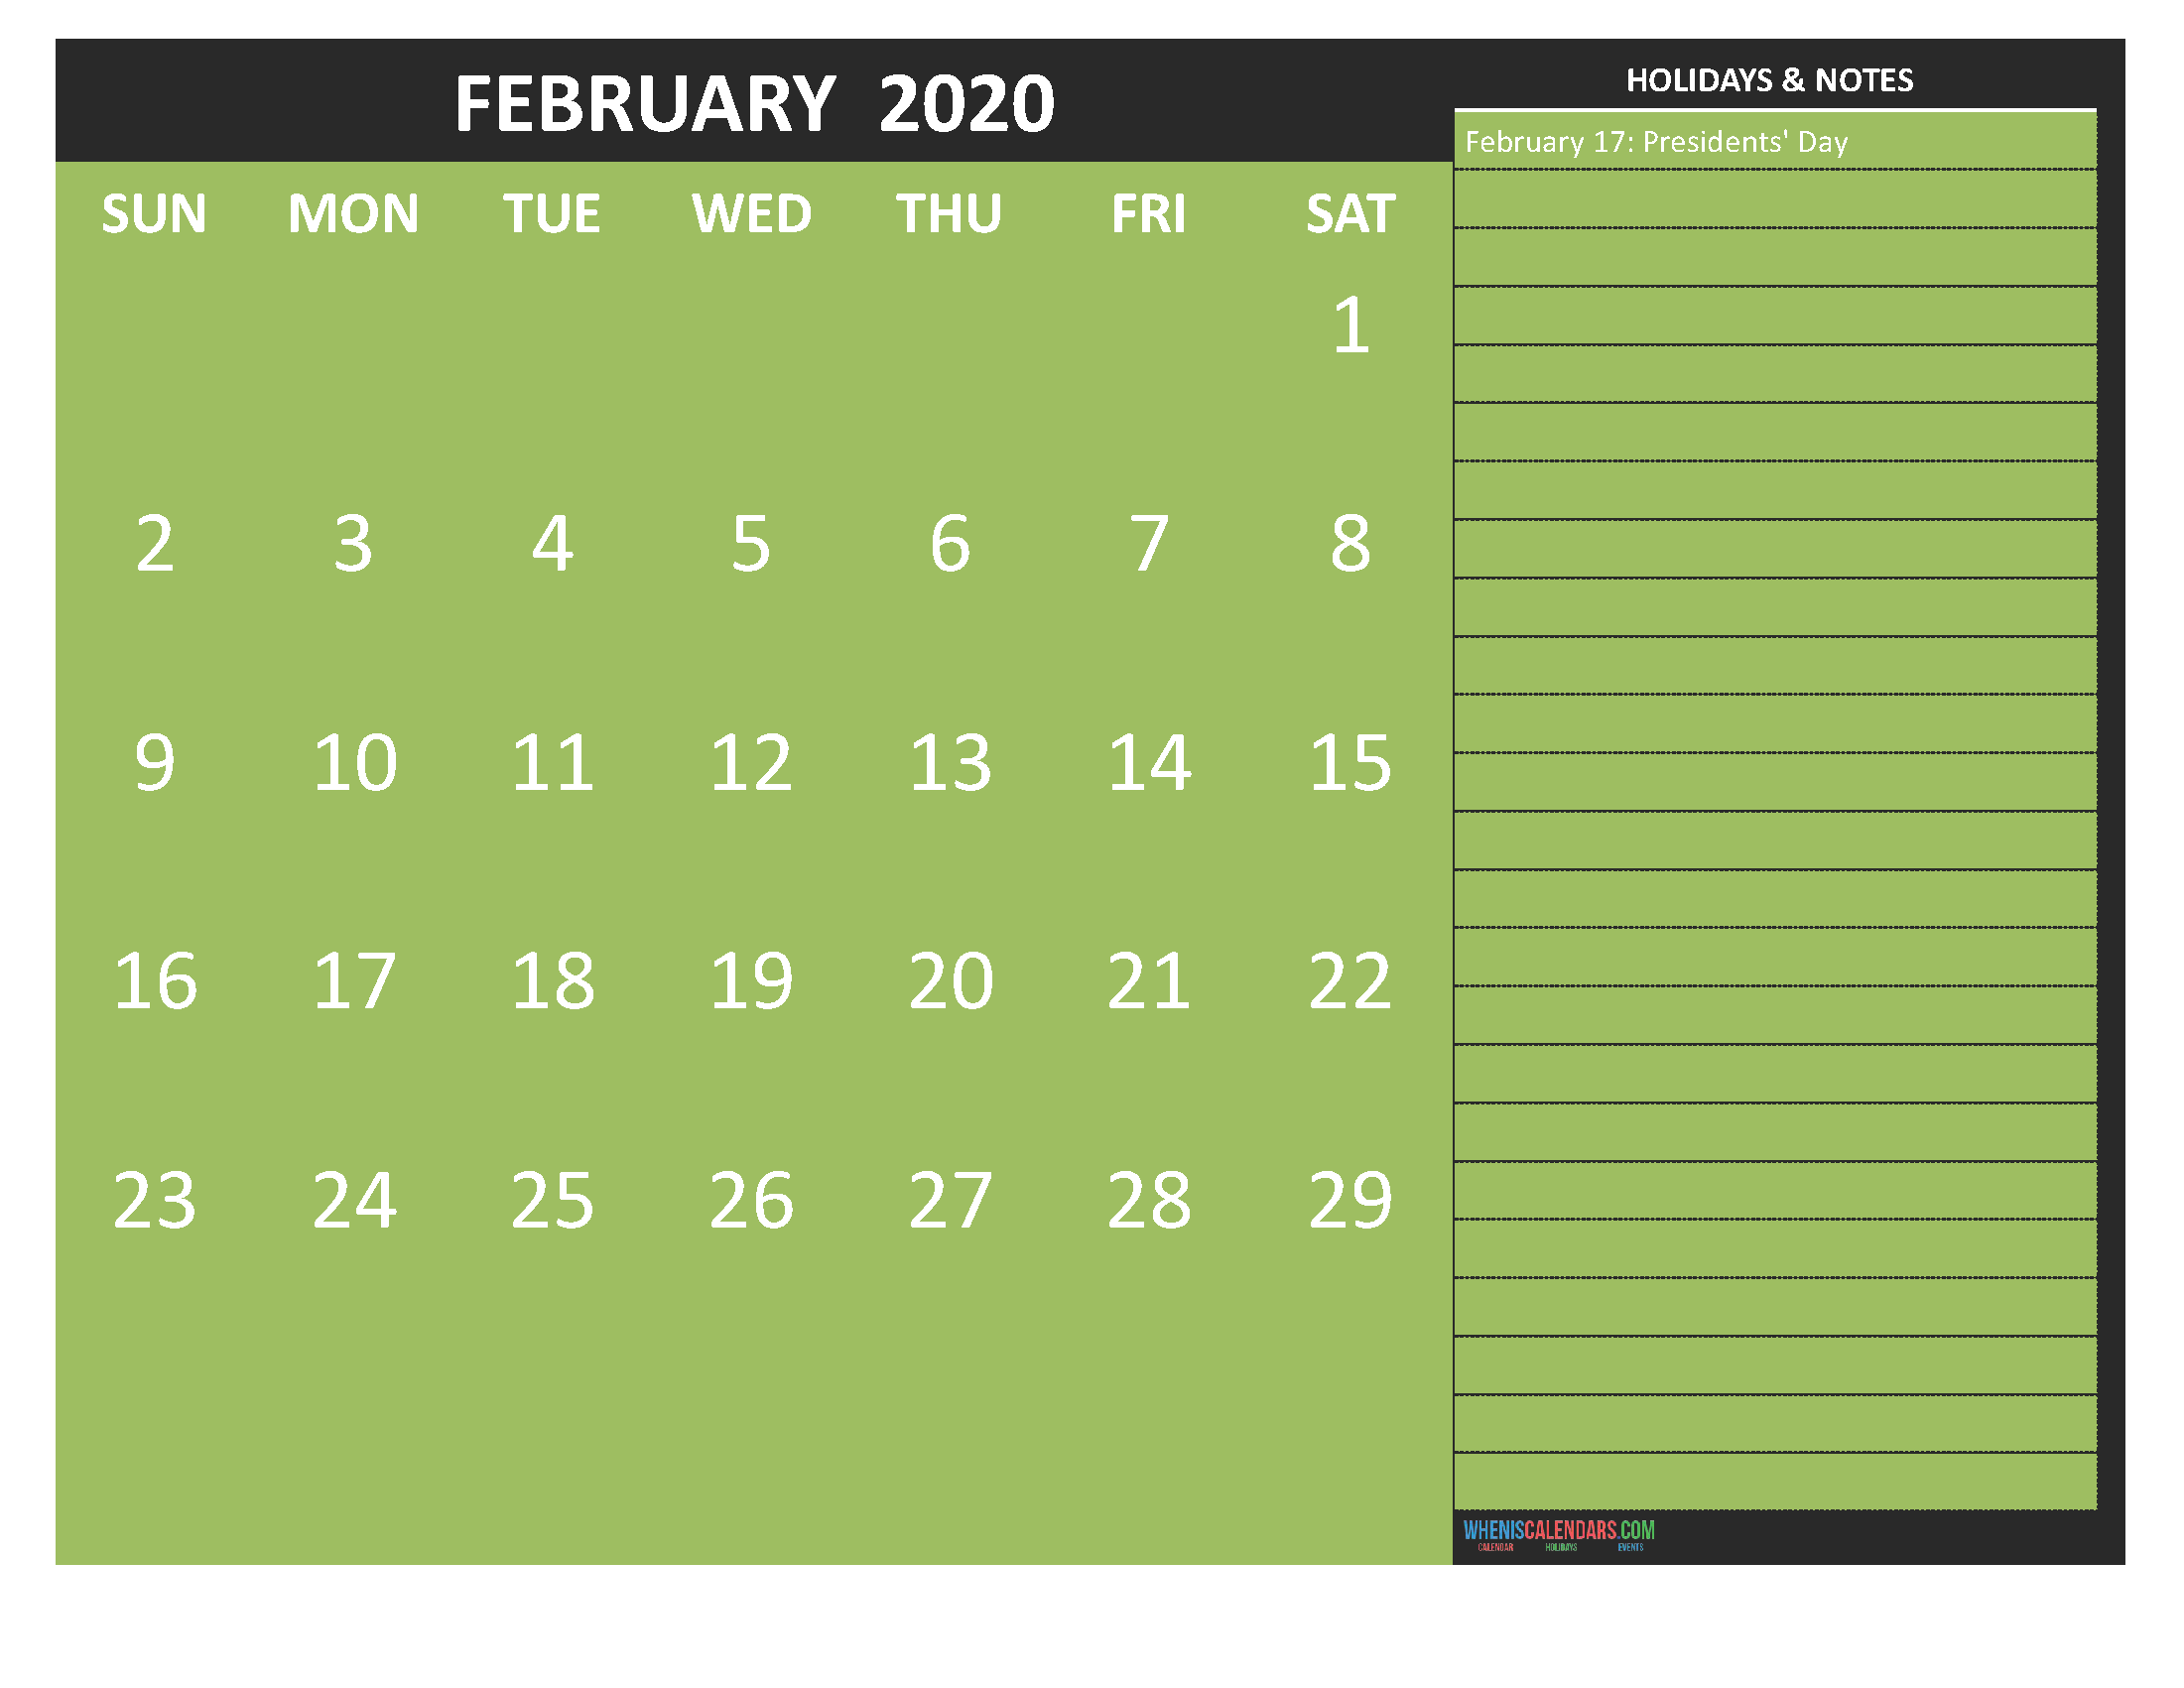 February 2020 Calendar with Holidays Free Printable by Word